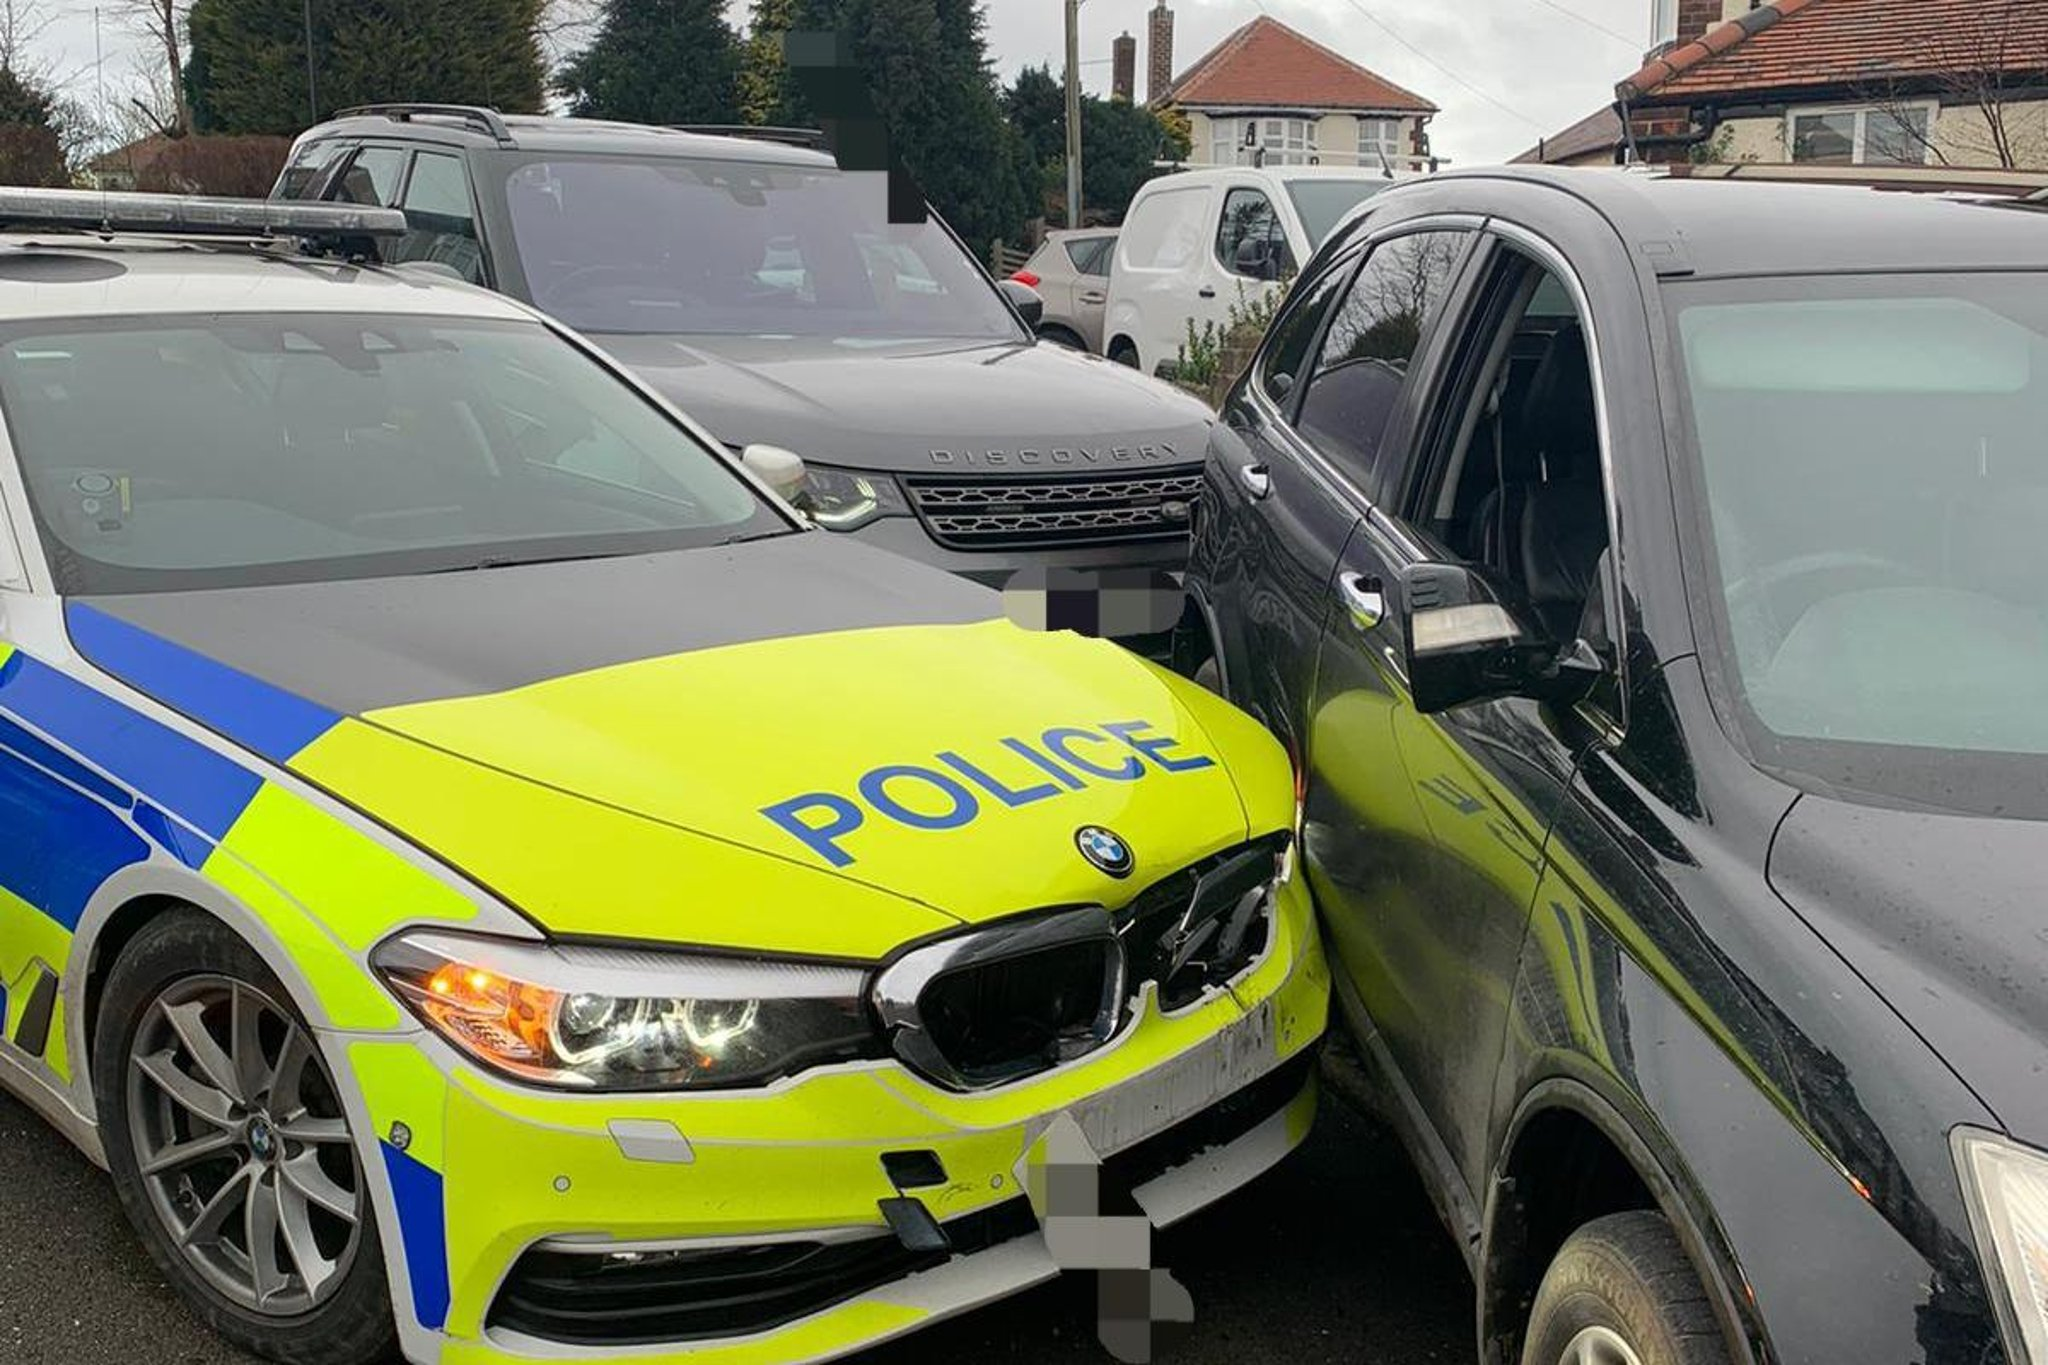 'Dangerous offender' apprehended after police car chase through Sheffield suburb